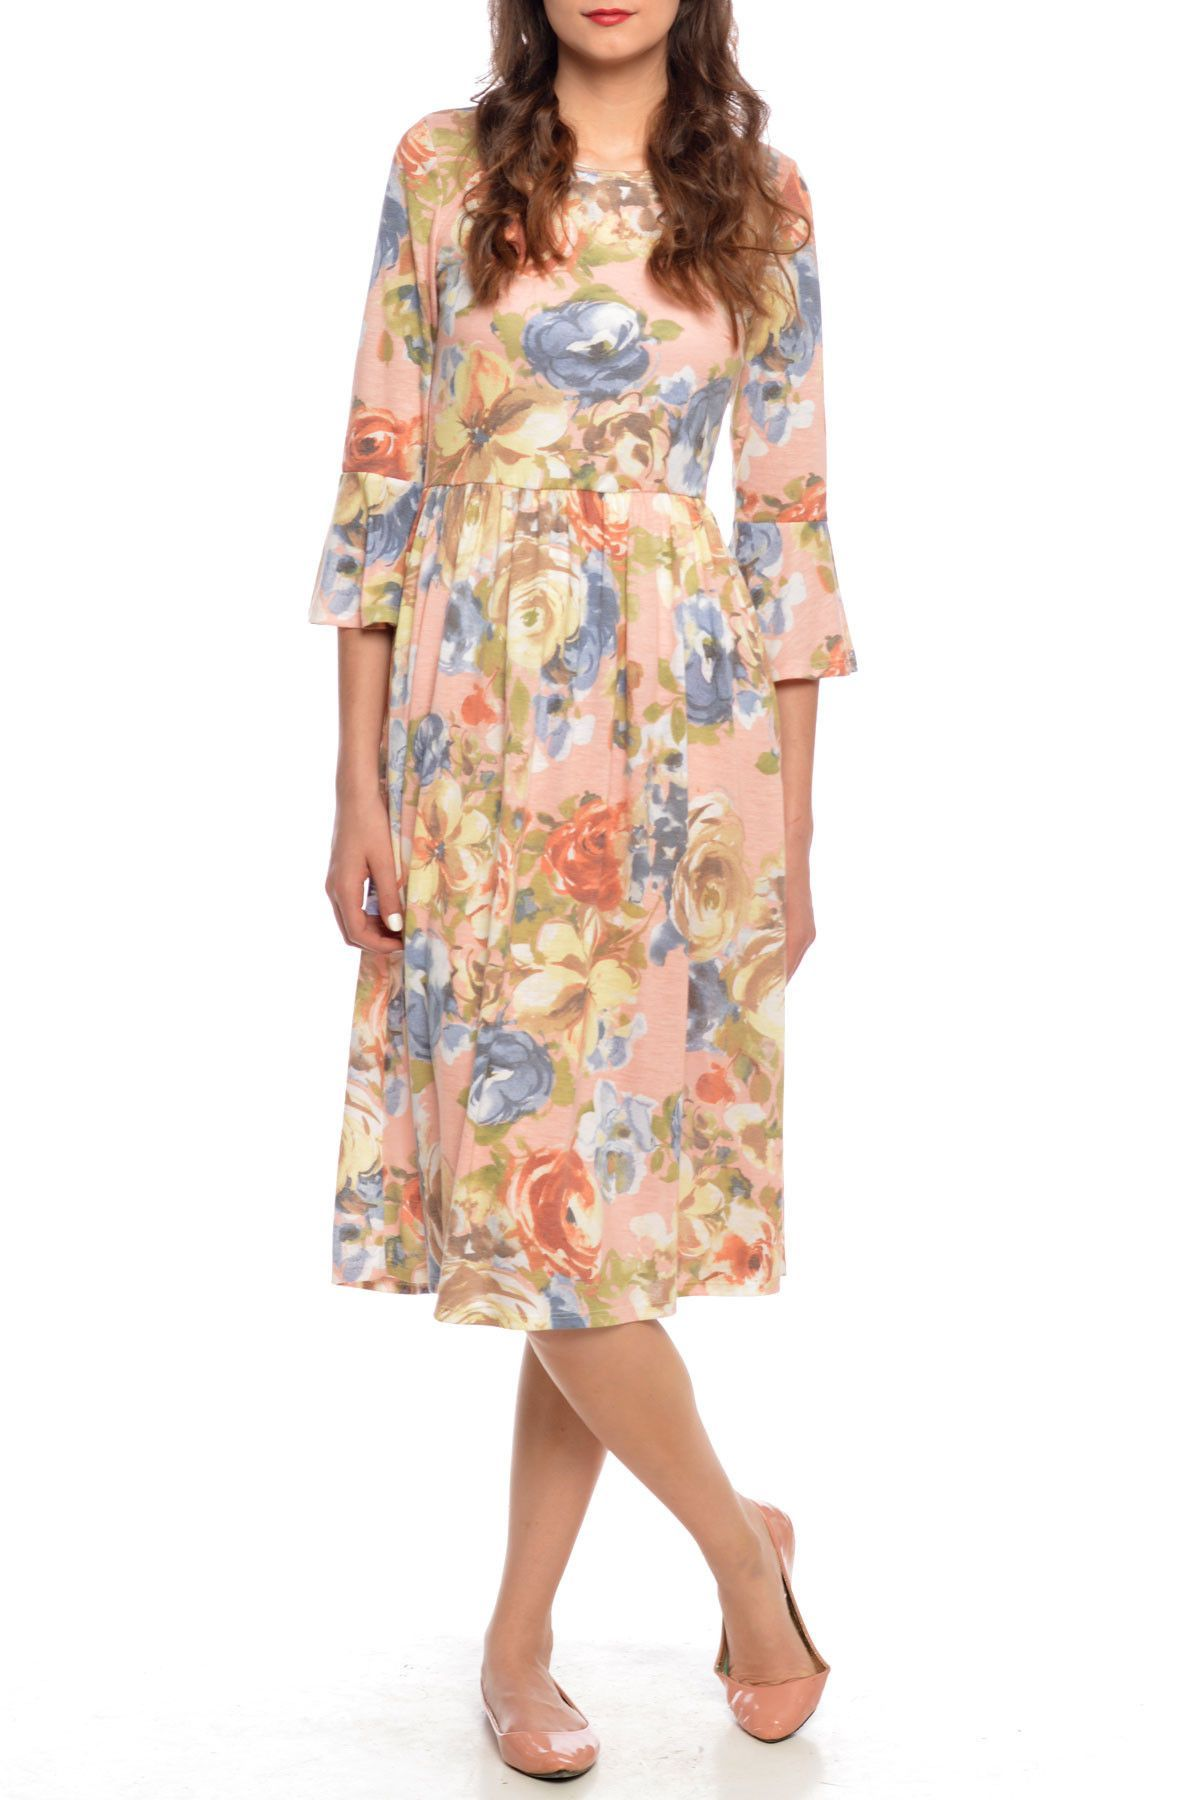 Watercolor Floral Dress in Peach